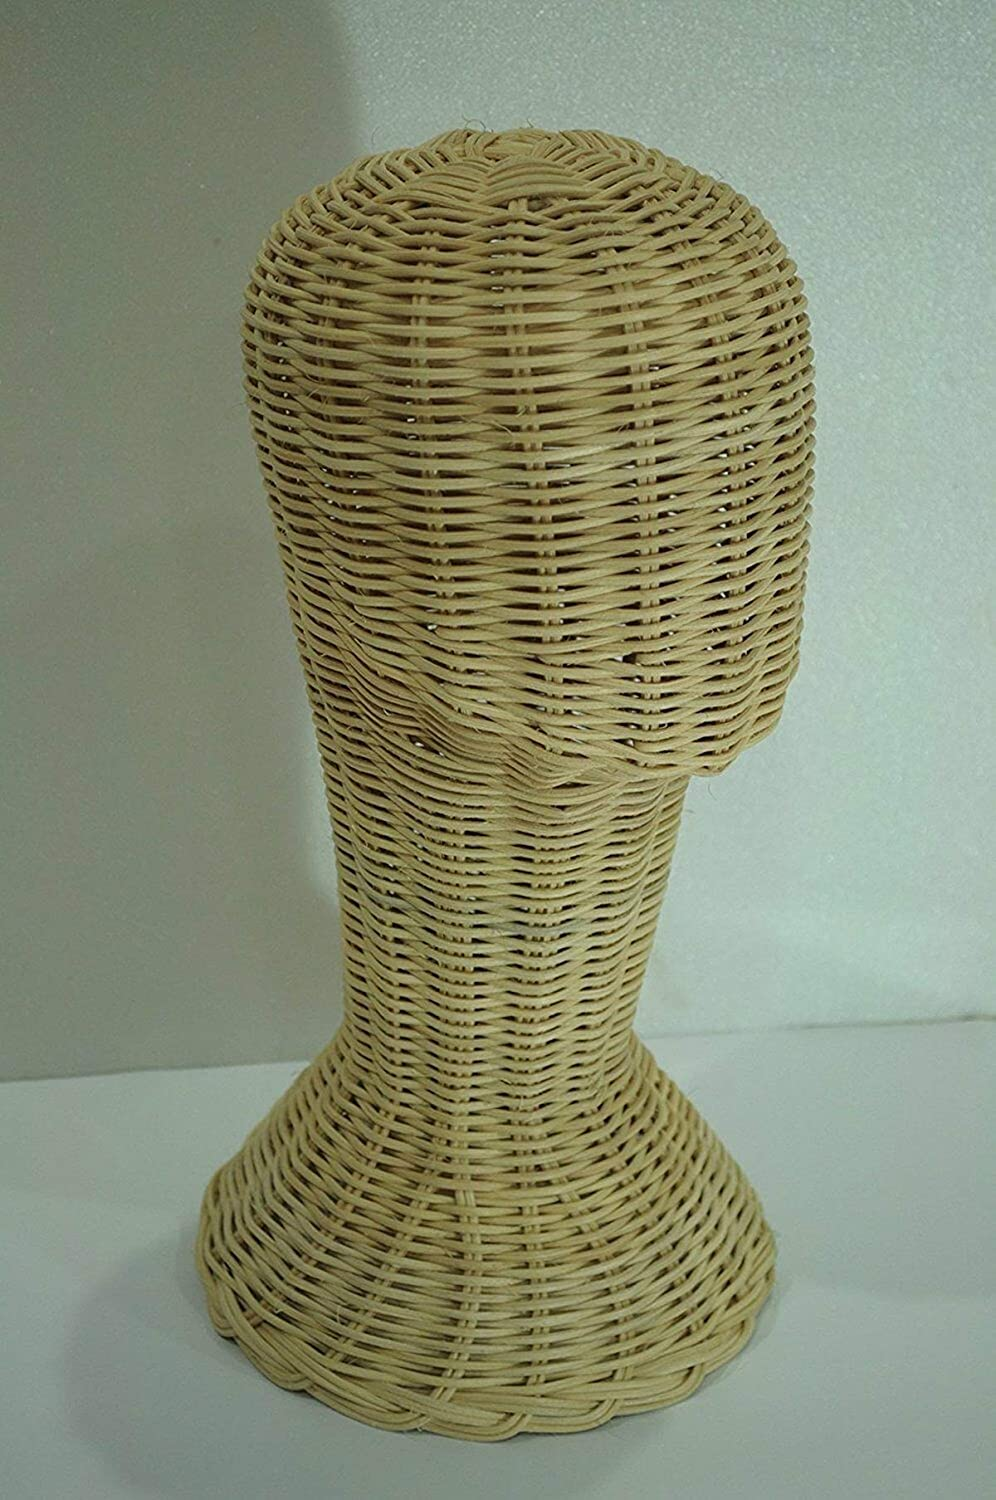 Vintage Handmade Wicker Display Head Store Wig Holder Hat Stand Head Nature Rattan Mannequin